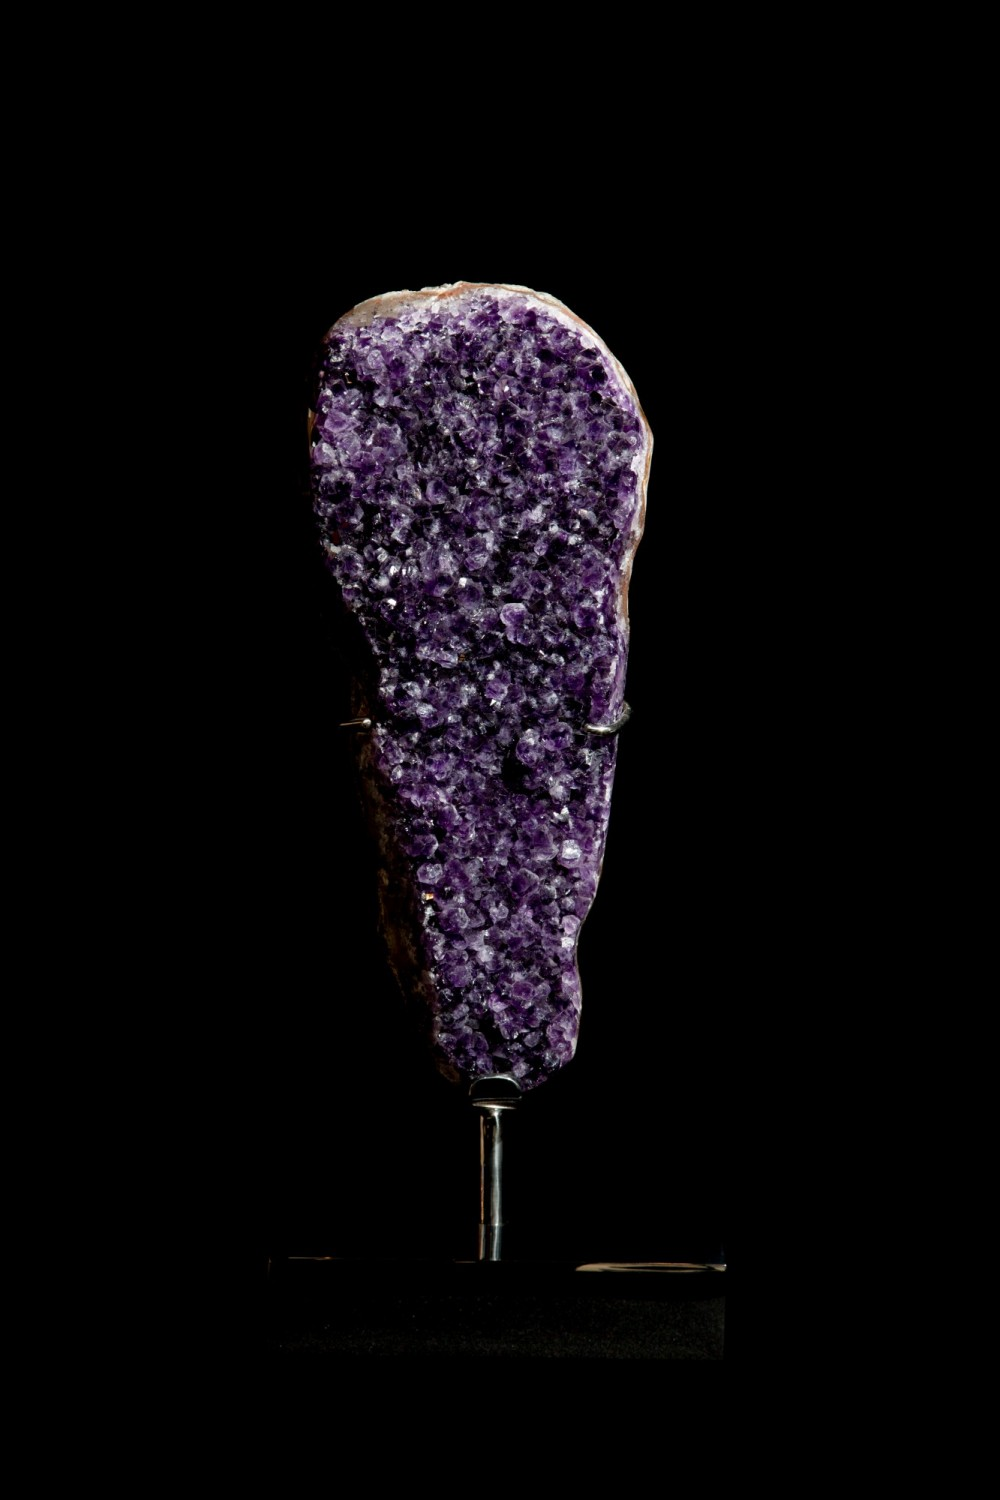 29. Amethyst on a stand 1